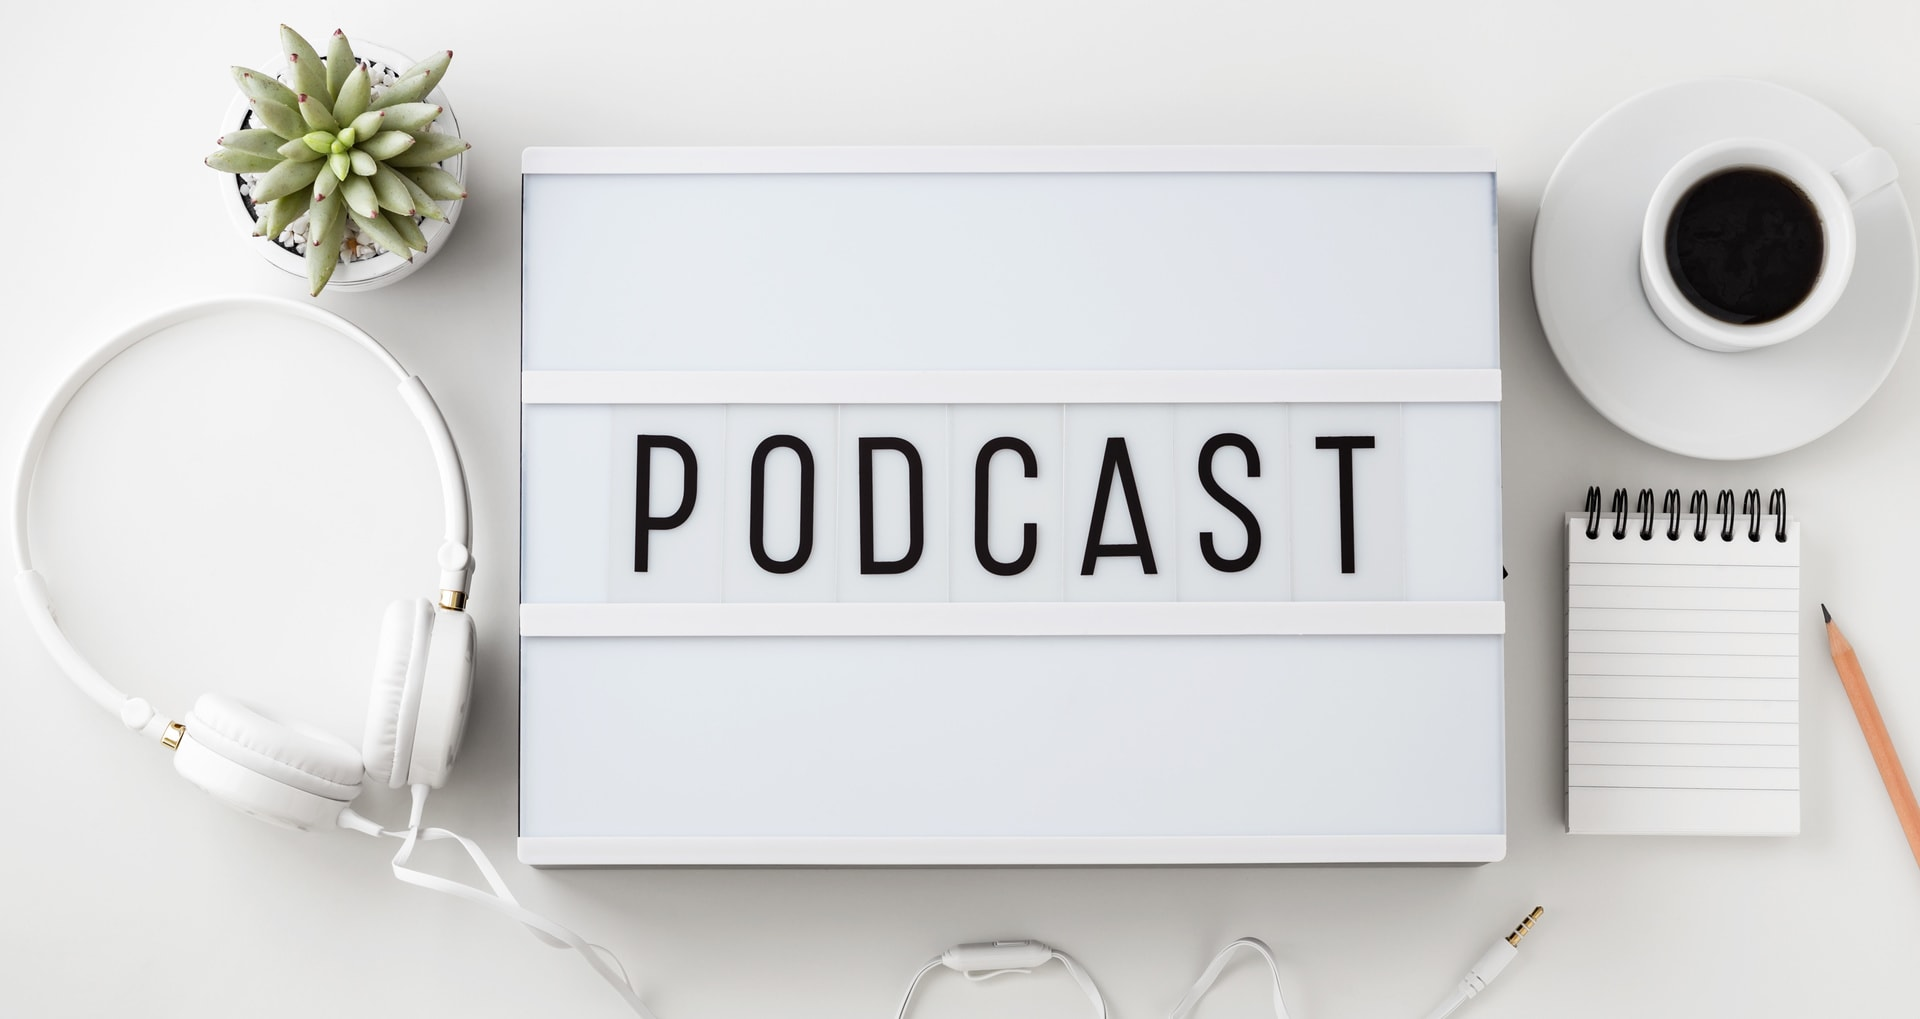 Podcast word on lightbox with headphones, coffee cup and notepad on white background, flat lay